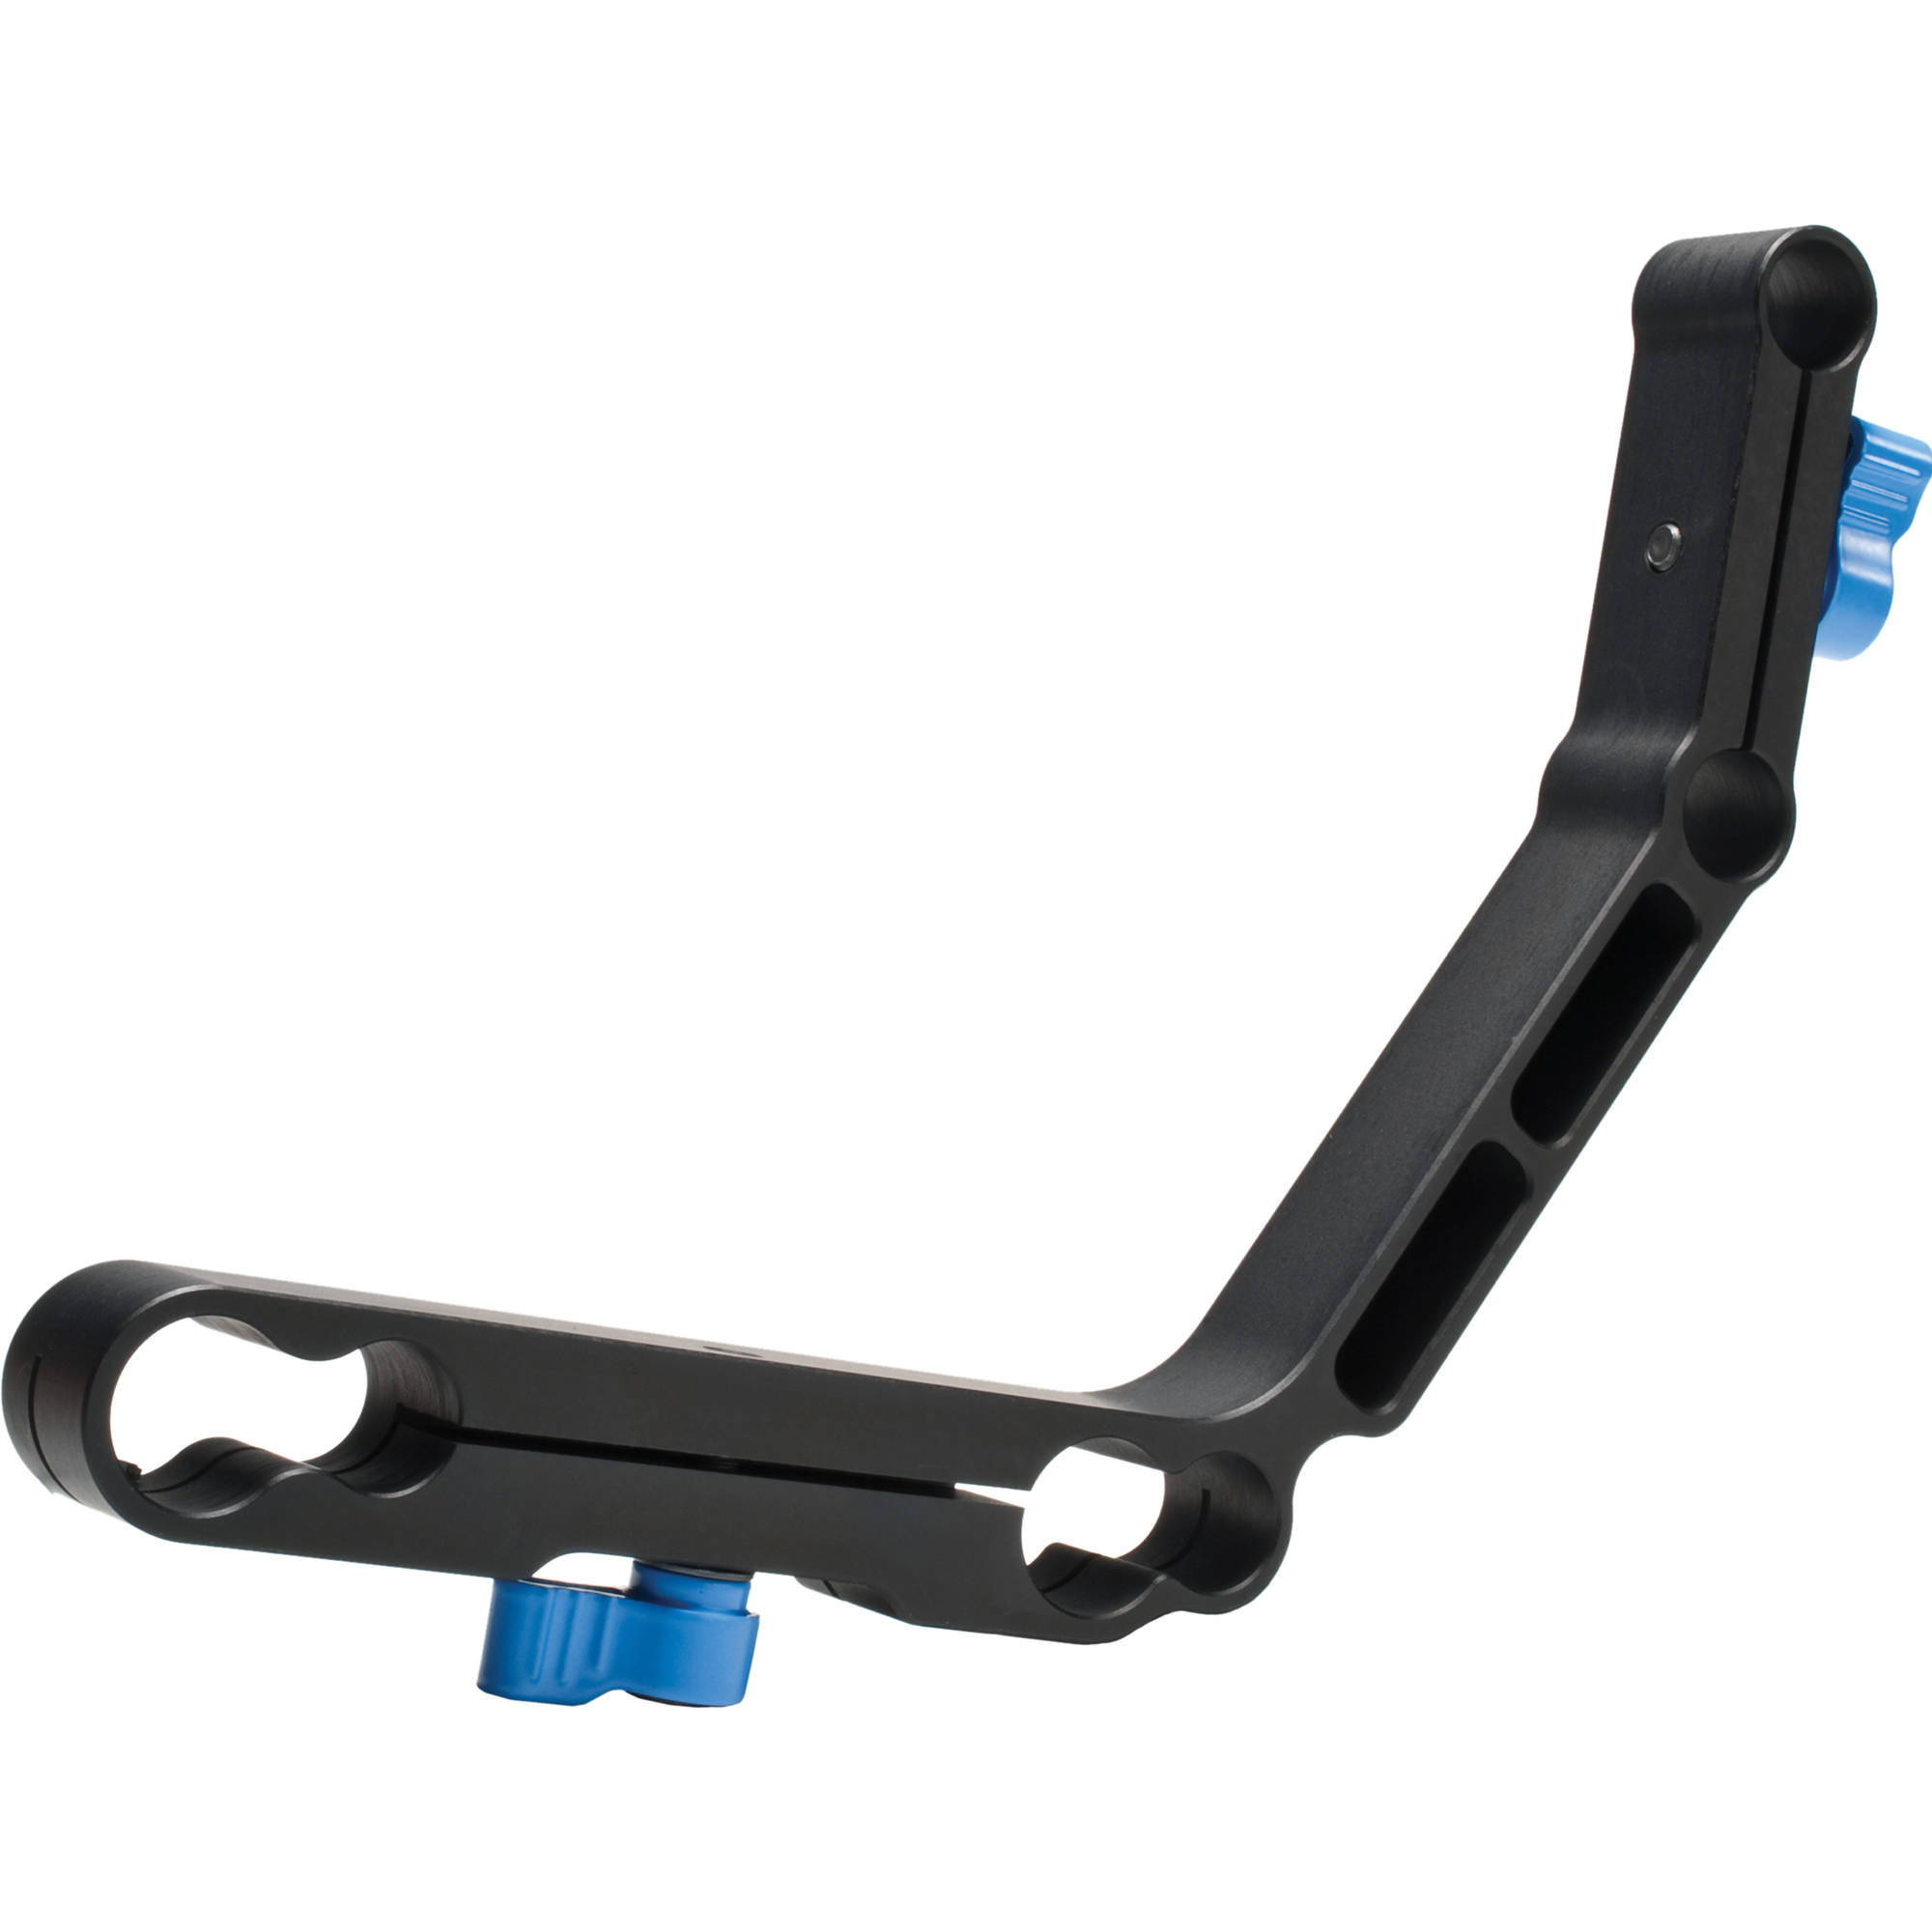 RedRockMicro 19mm or 15mm 90 Degree Support Arm